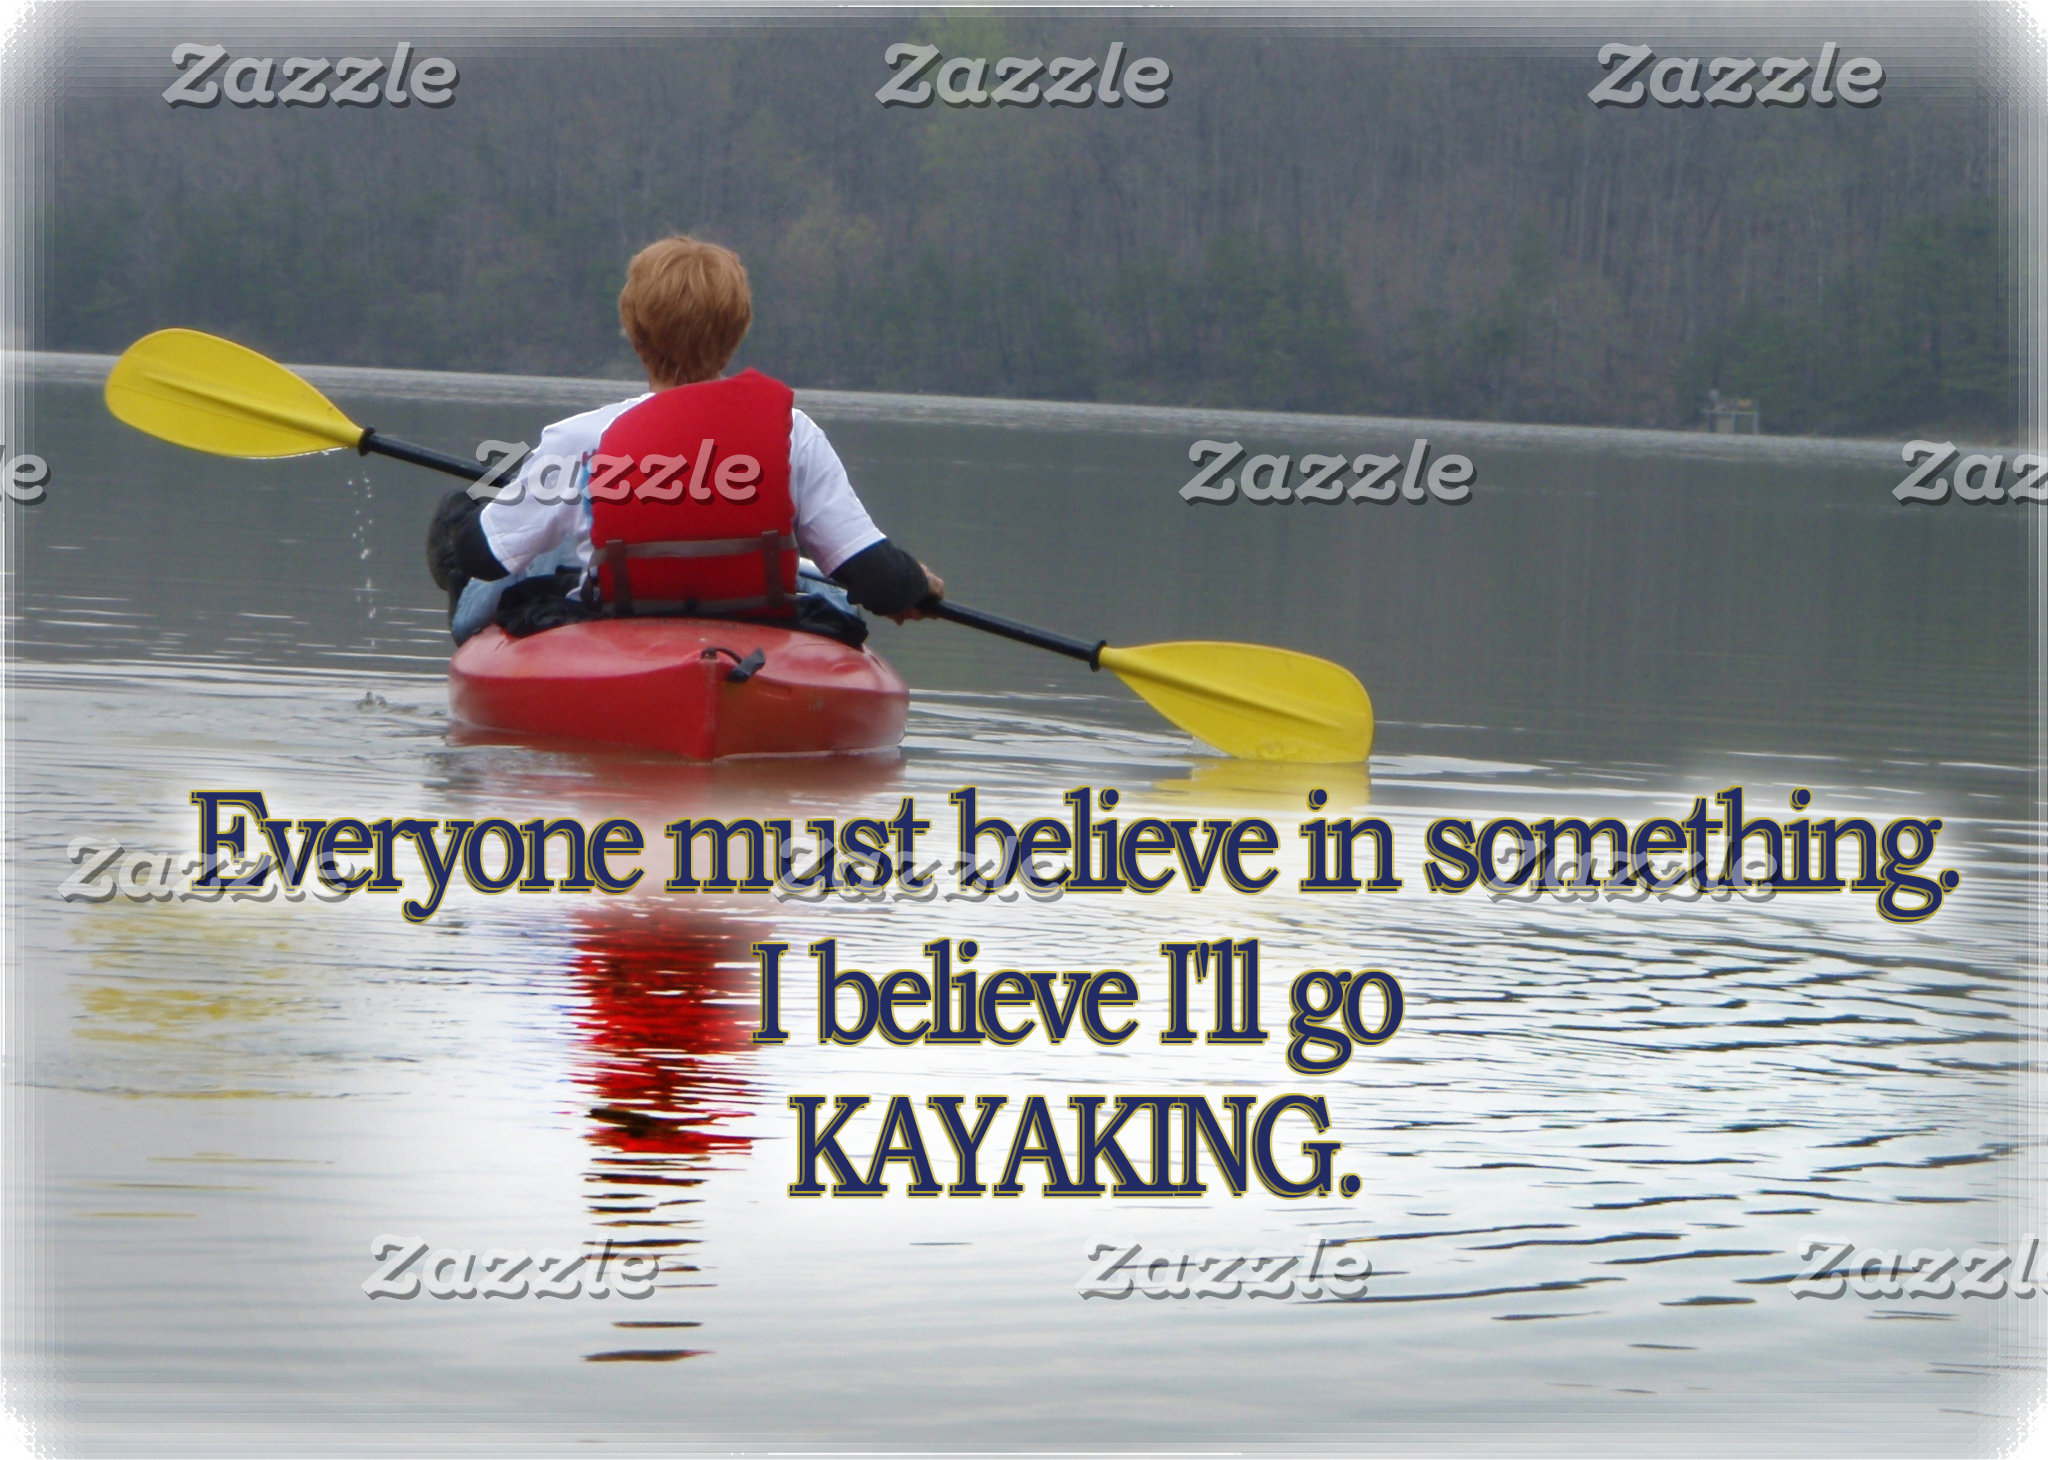 KAYAKING MOTTO / QUOTE